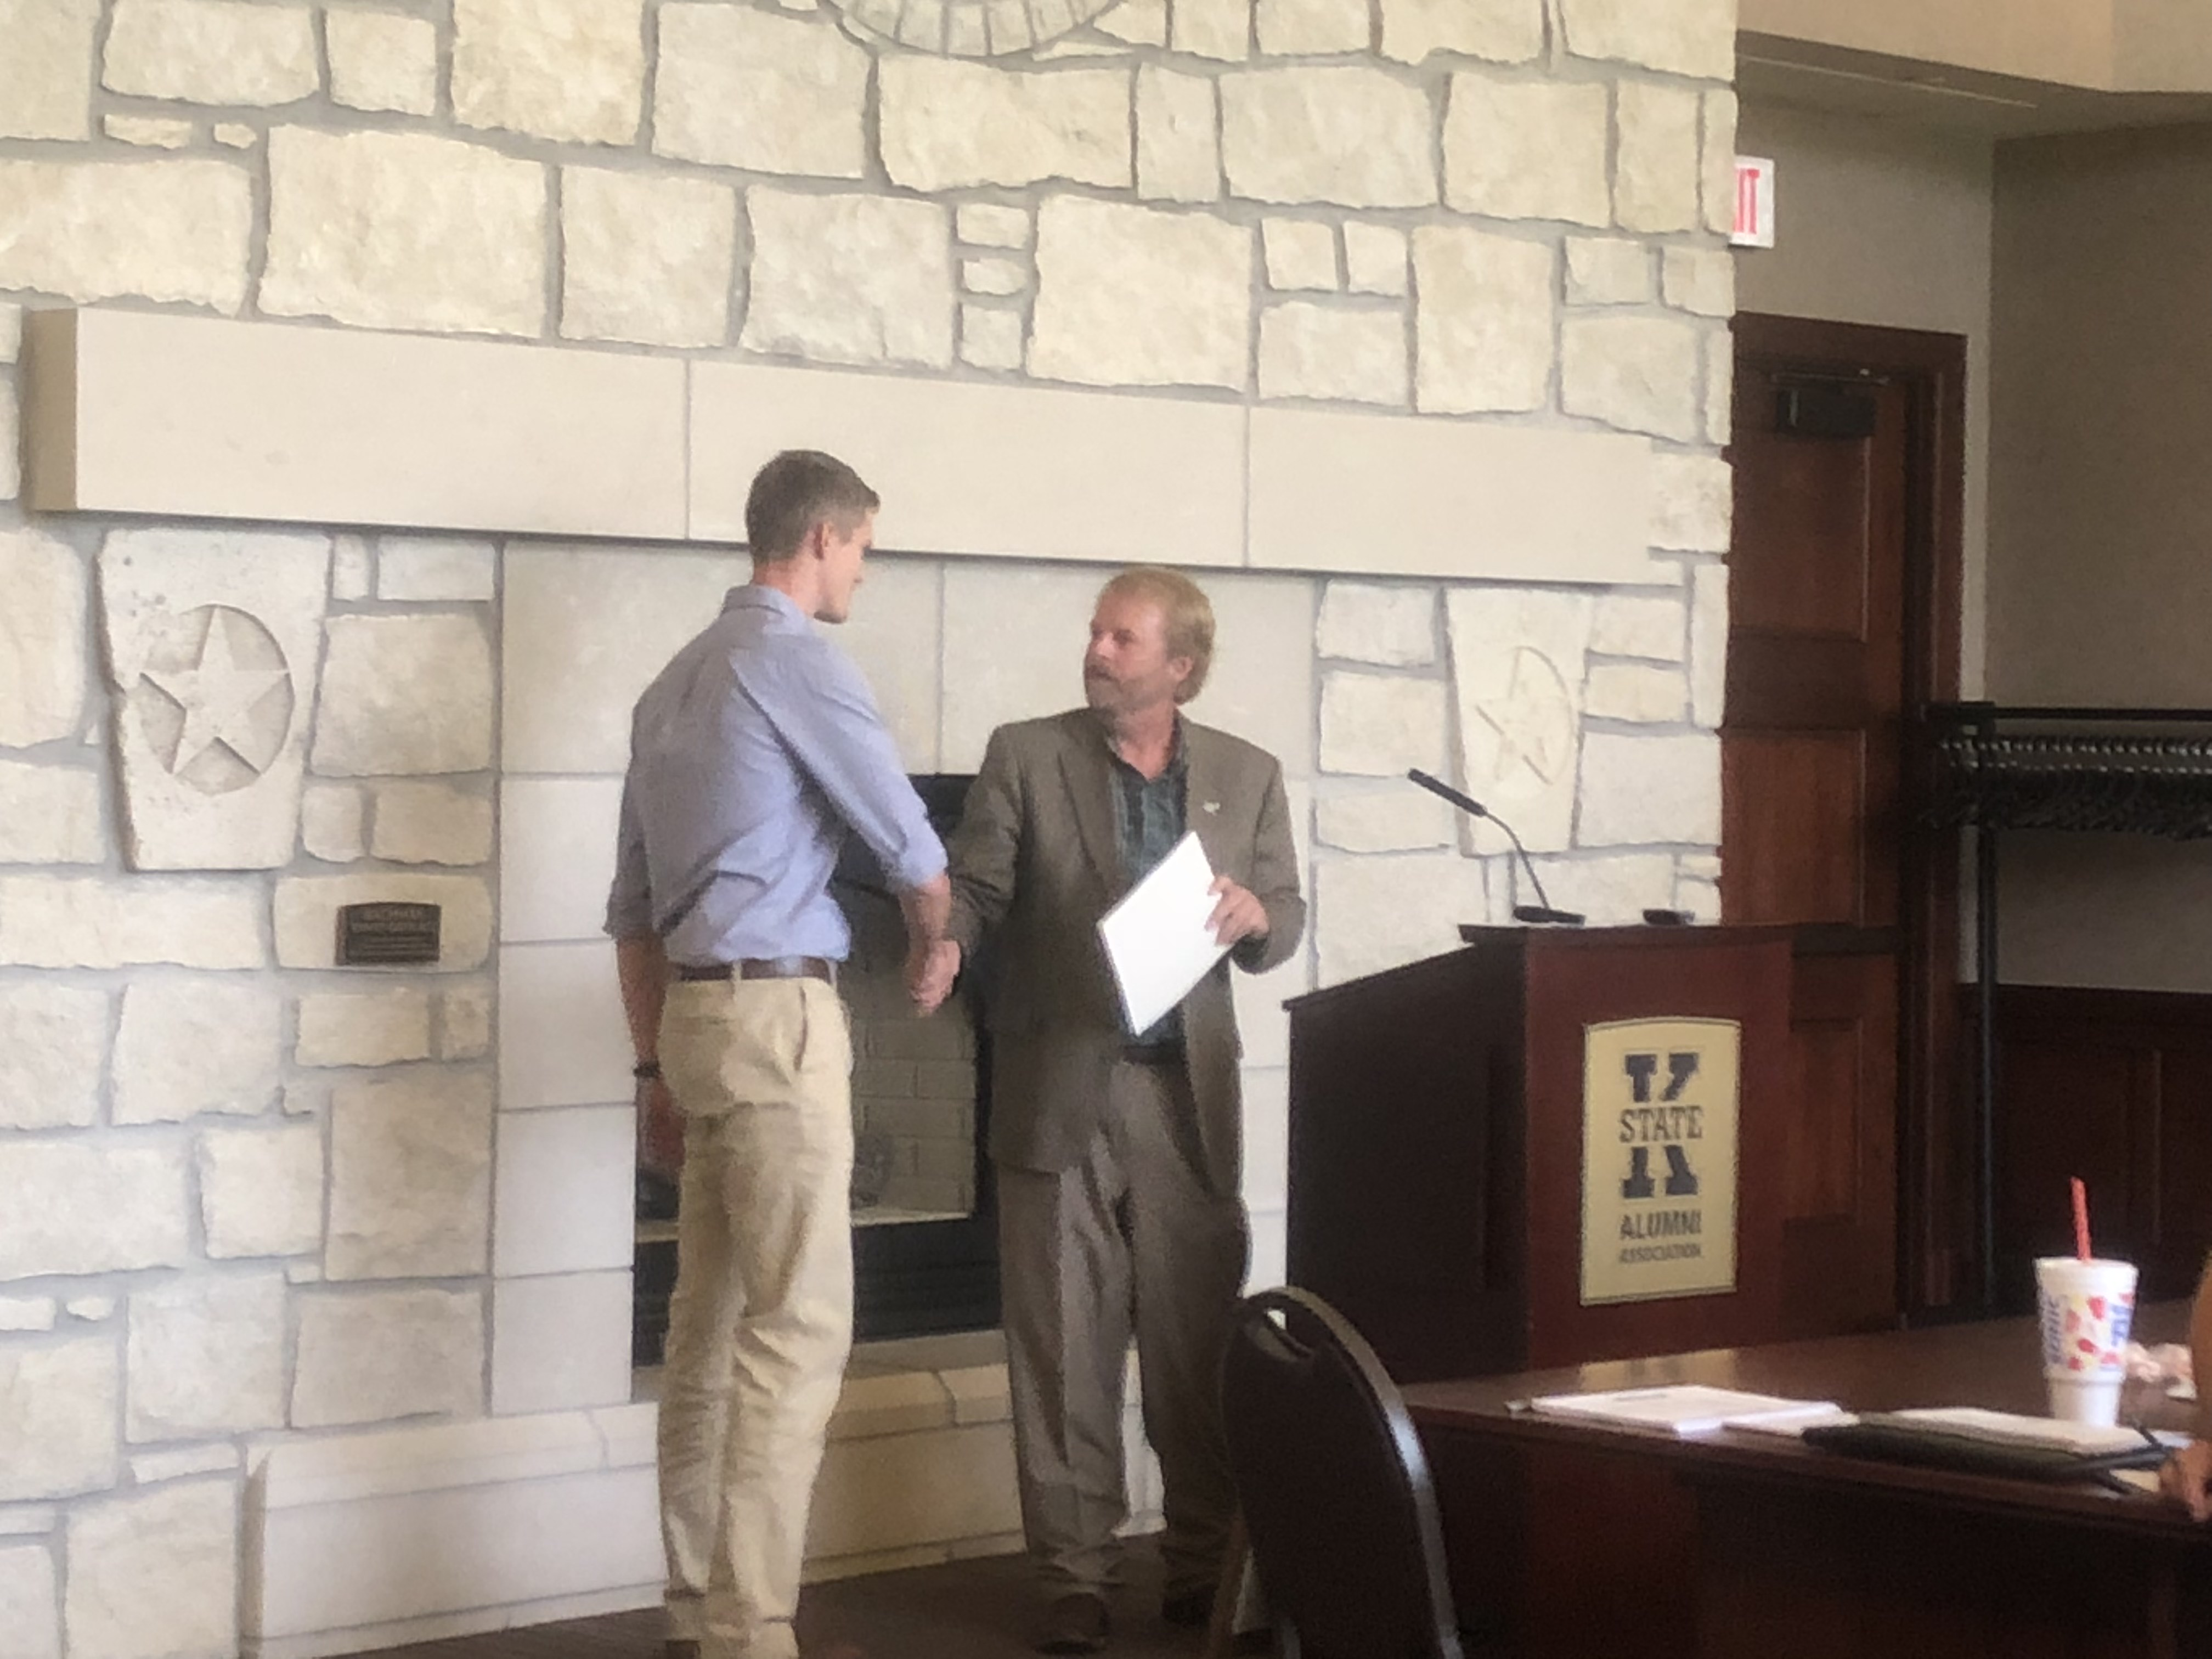 Chris receiving the outstanding Student Award from Dr. Haukos